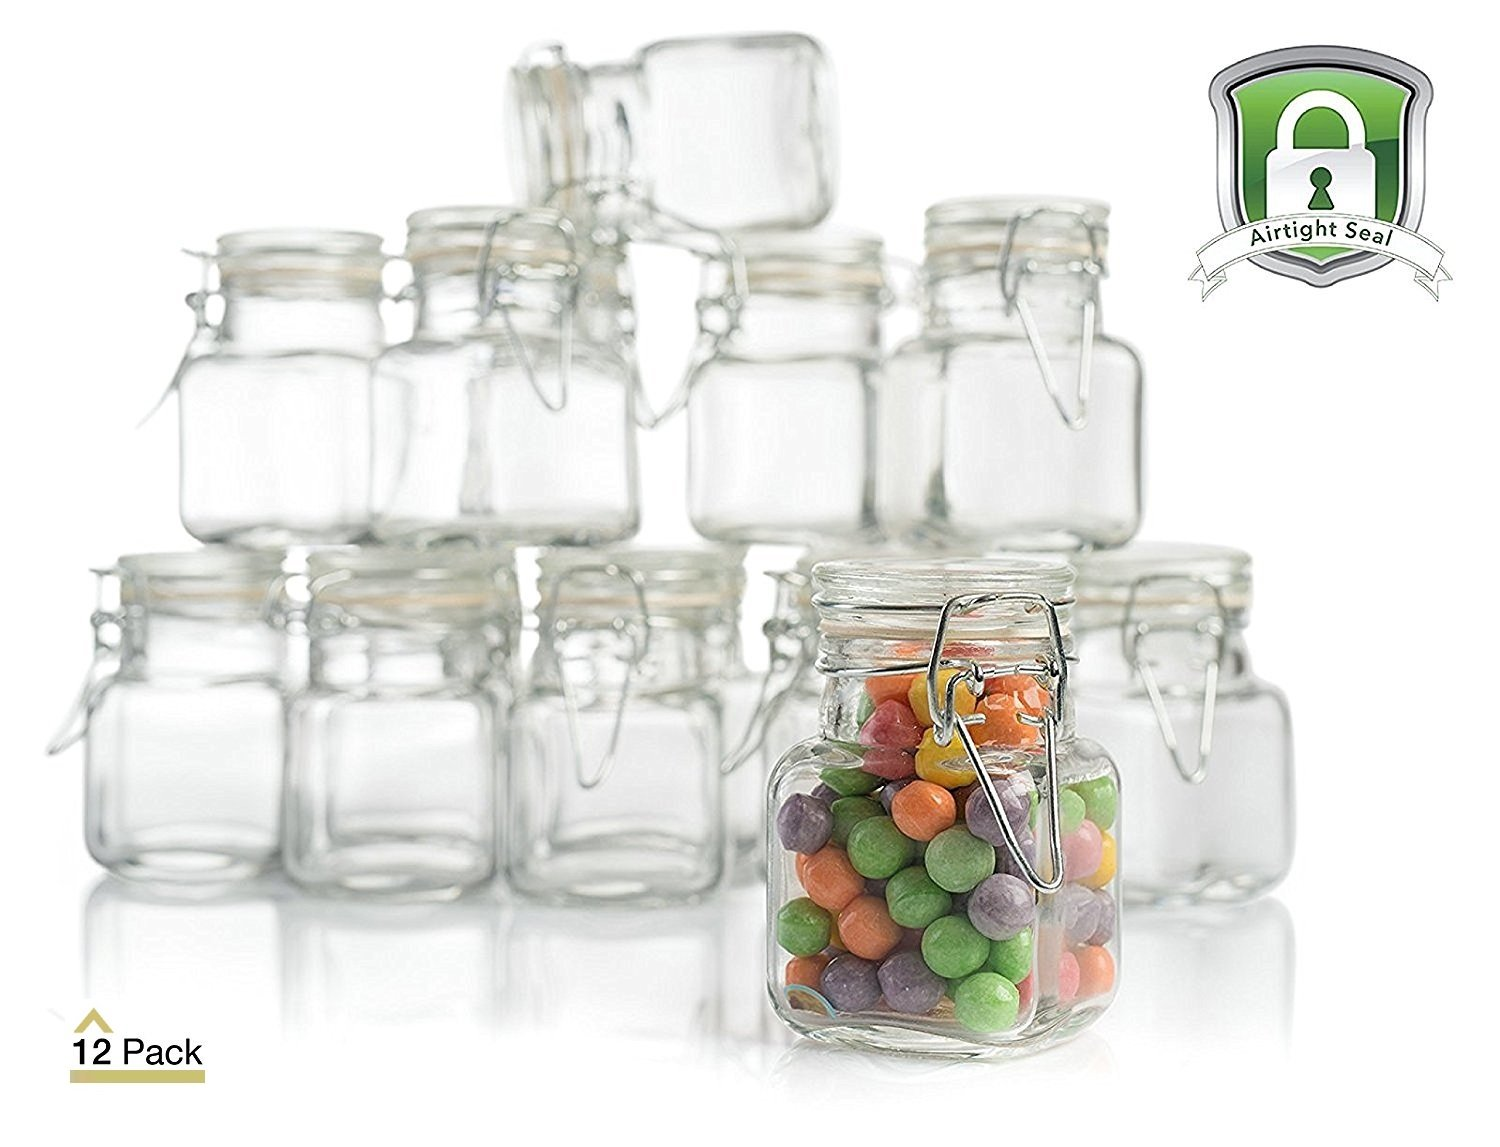 Airtight Clear Glass Jar Set Of Sealed Lid Glass Container With Leak